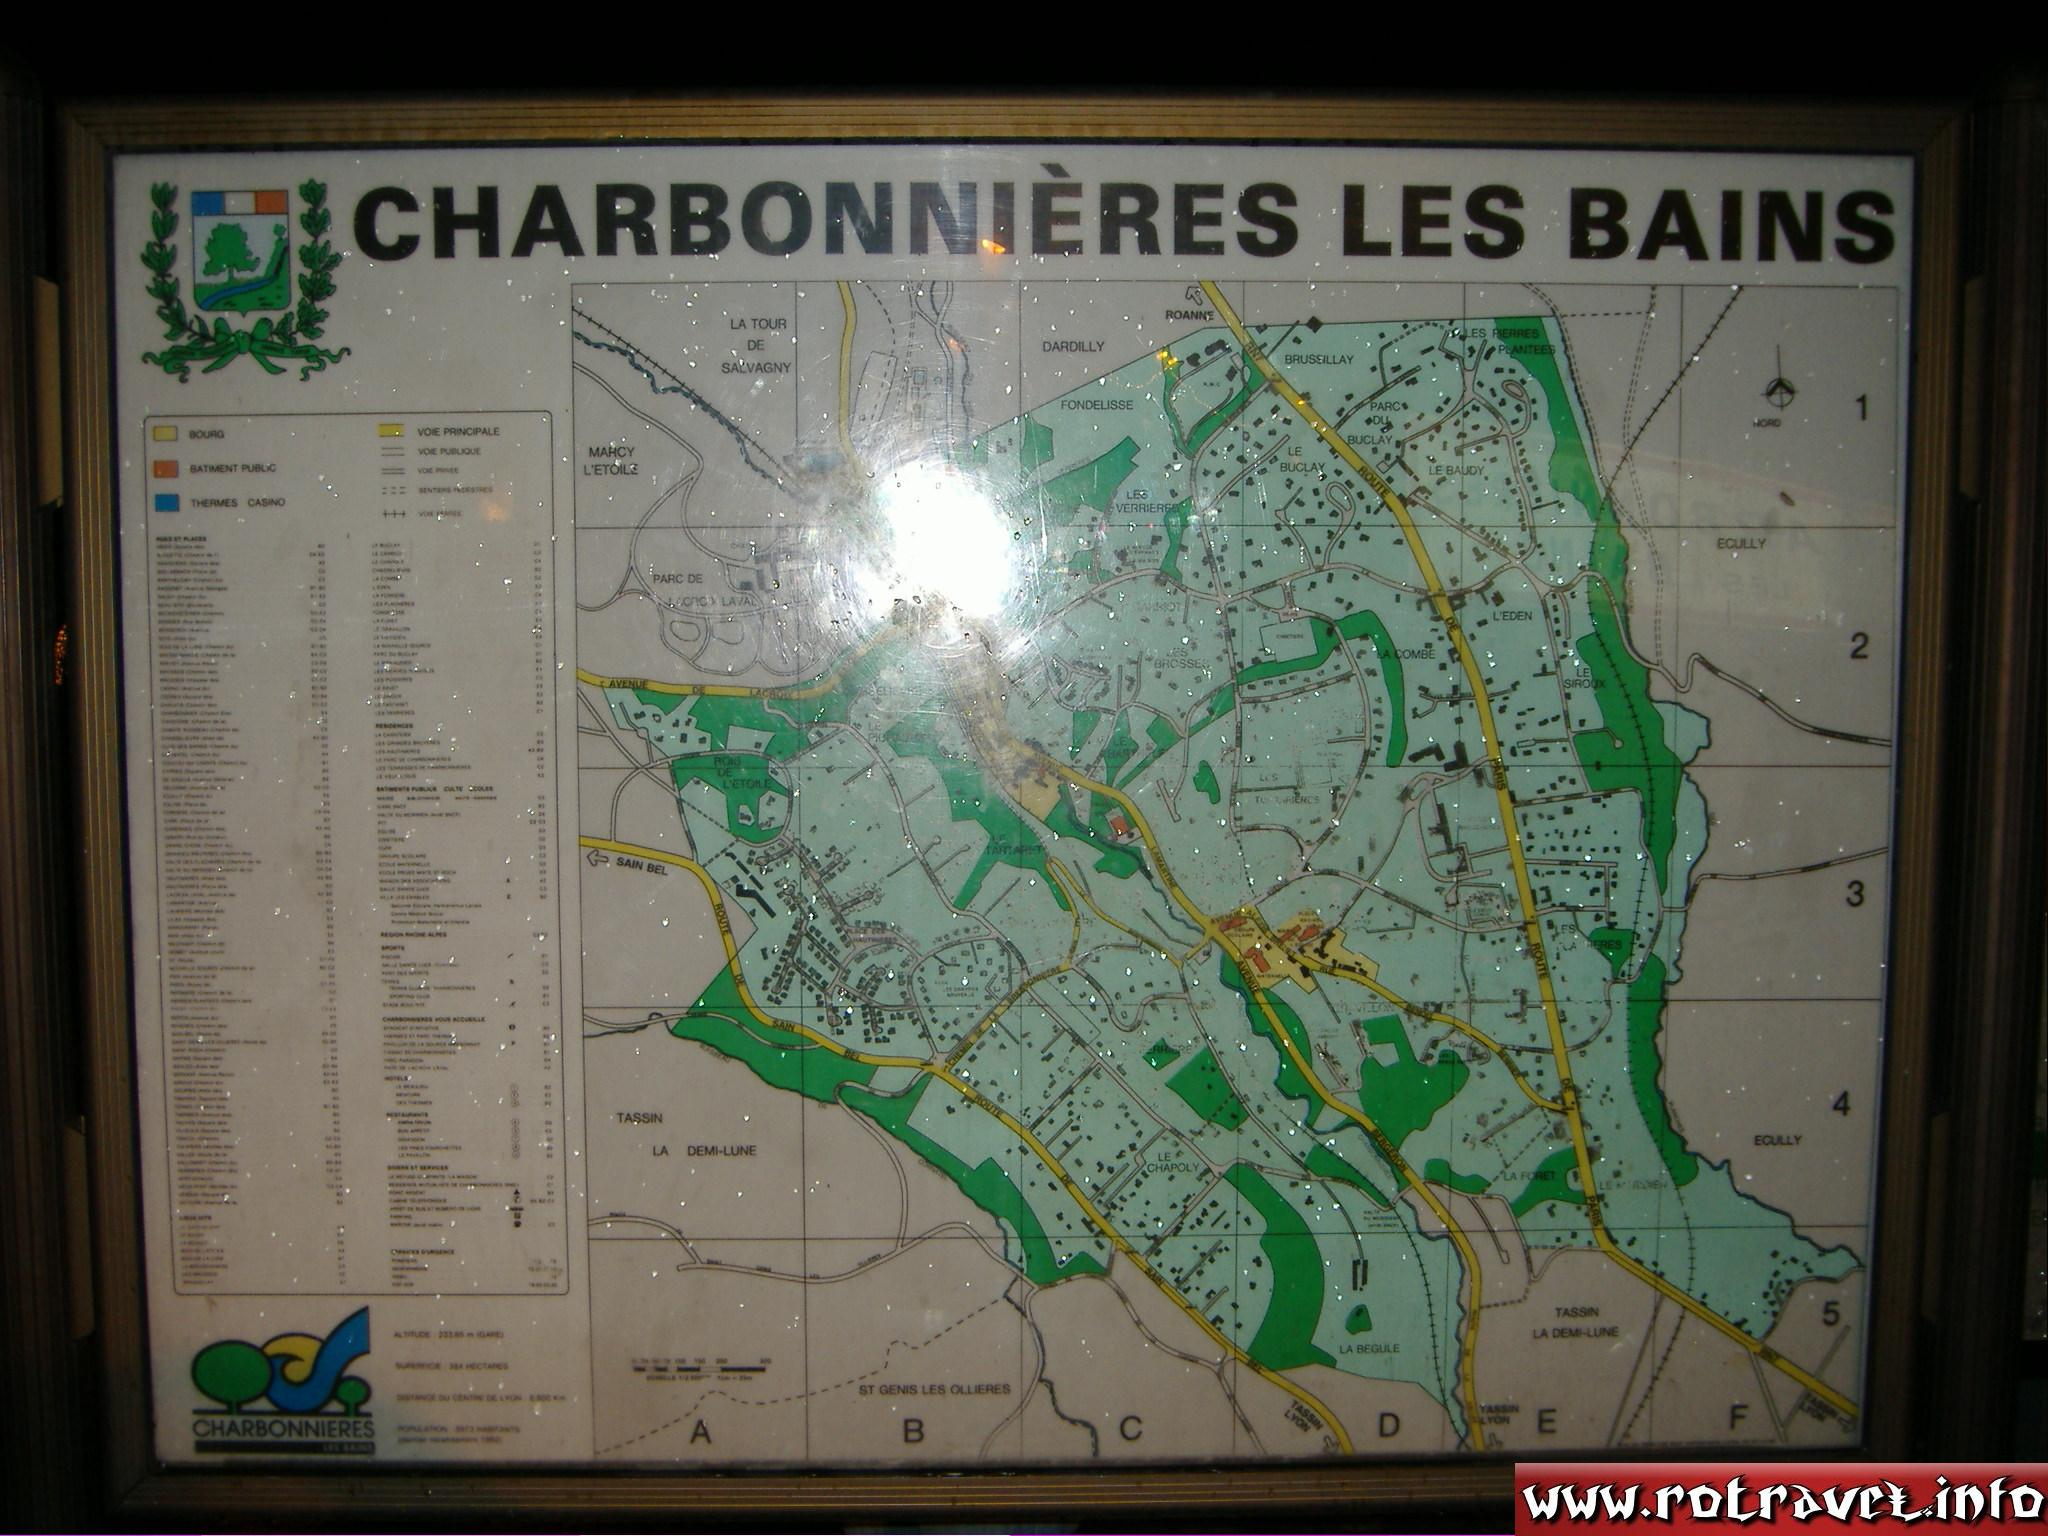 Charbonnières-les-Bains is a commune in the Rhône department in eastern France. The commune is near Lyon.